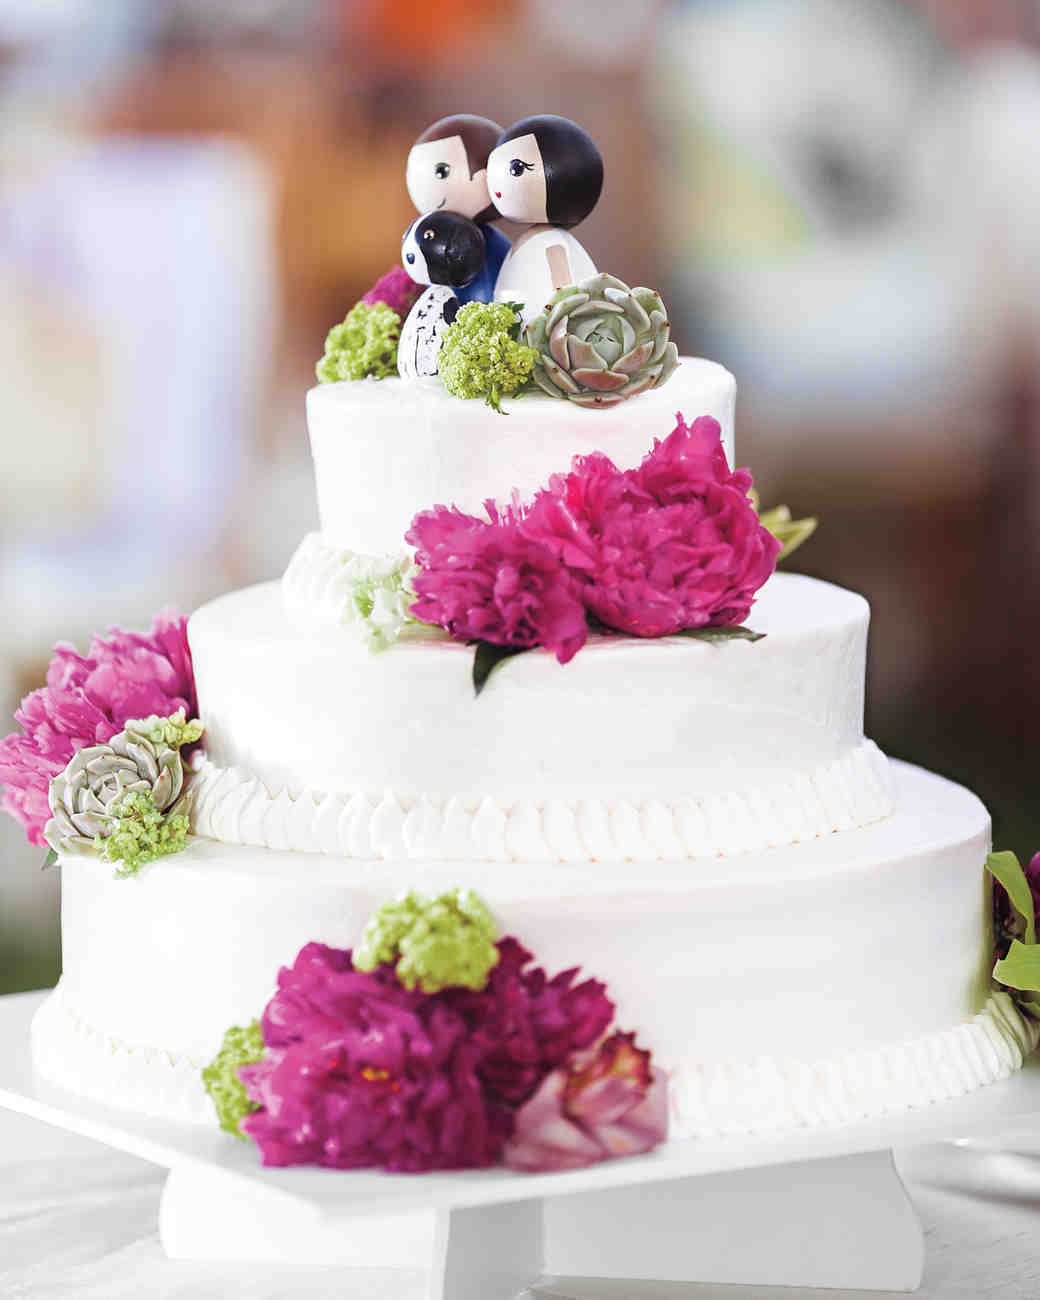 Three-Tiered White Wedding Cake with Fresh Flowers and Custom Kokeshi Dolls